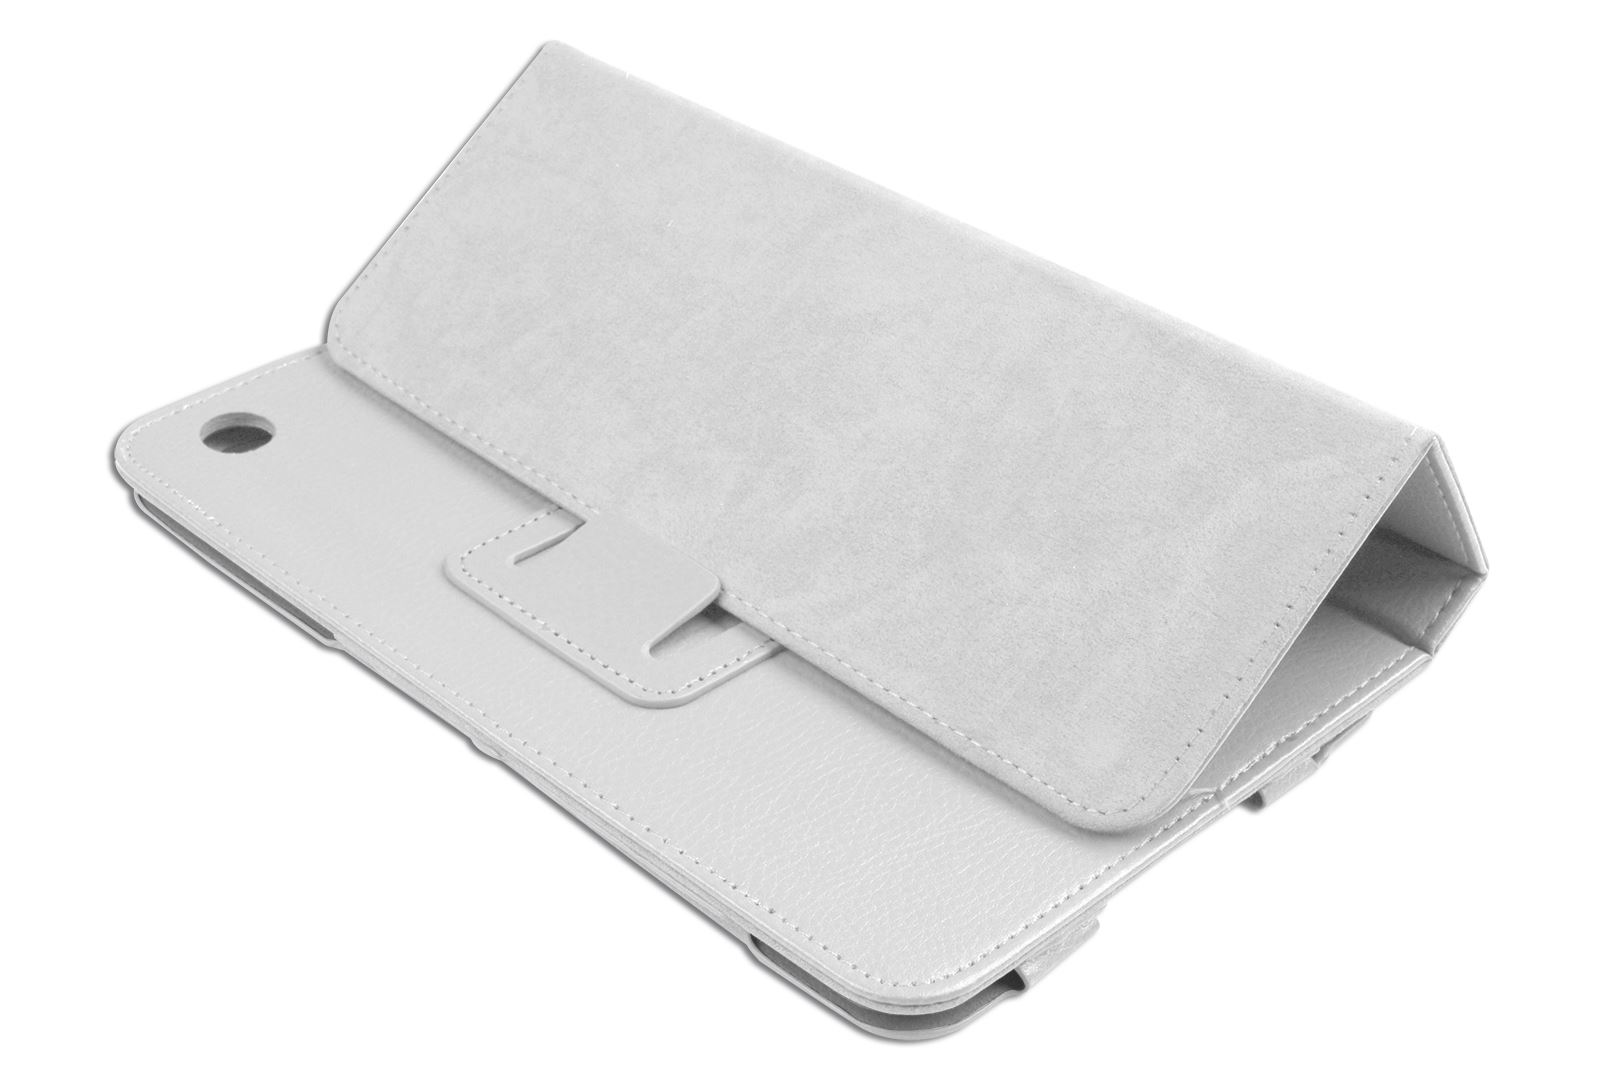 Hellfire-Trading-Magnetic-PU-Leather-Case-Cover-for-Lenovo-IdeaTab-A8-50-A5500 Indexbild 34